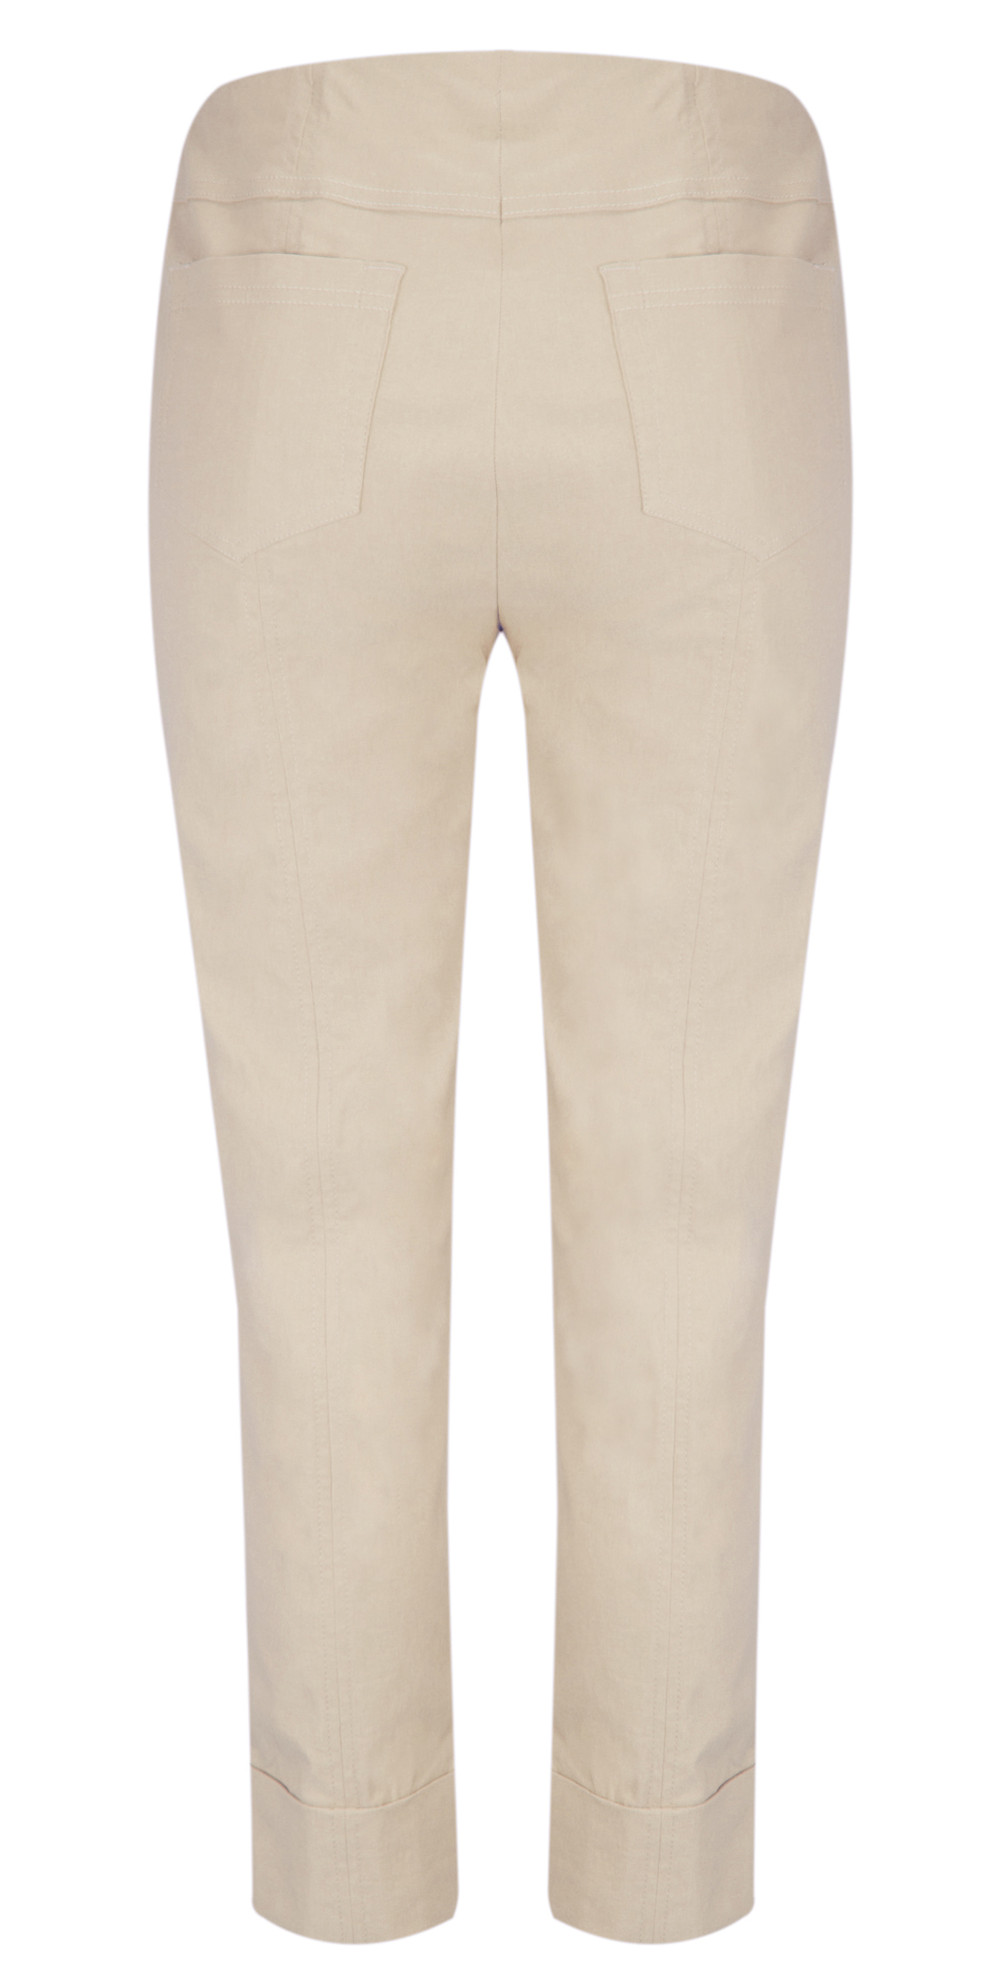 b8133d6c981 Robell Trousers Bella 7 8 Ankle Length Trouser in Beige